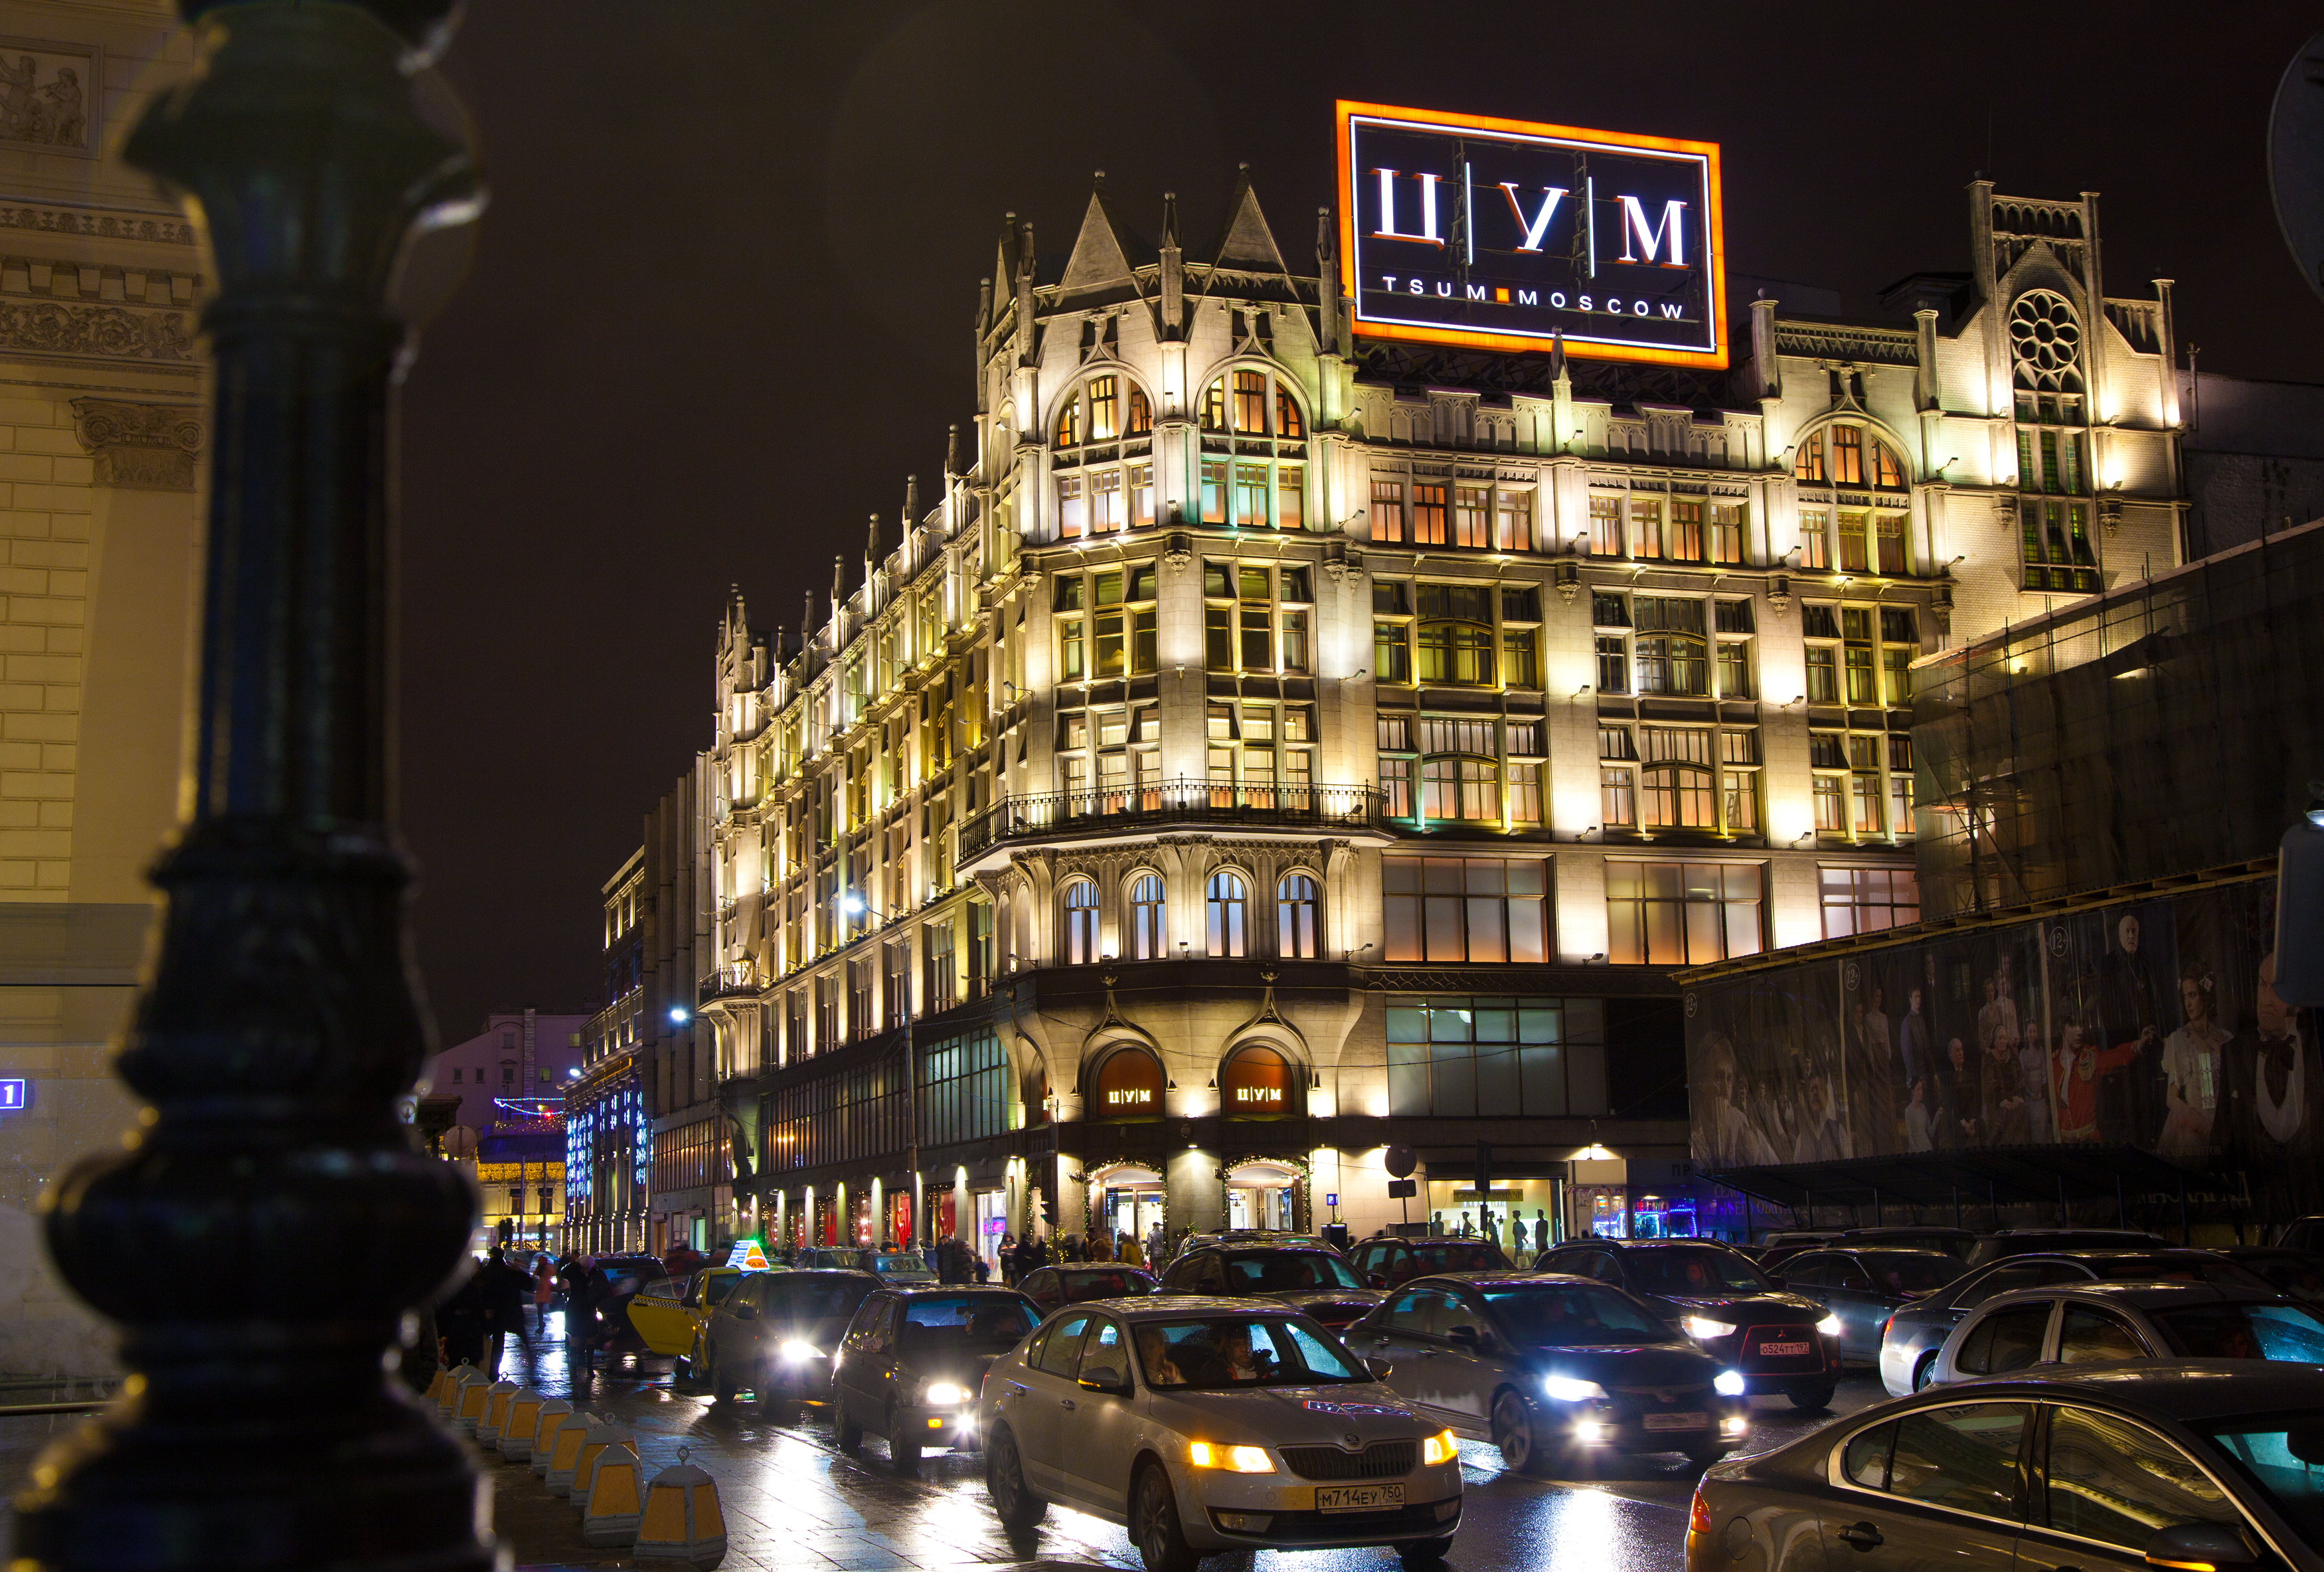 The TSUM department store in Moscow.